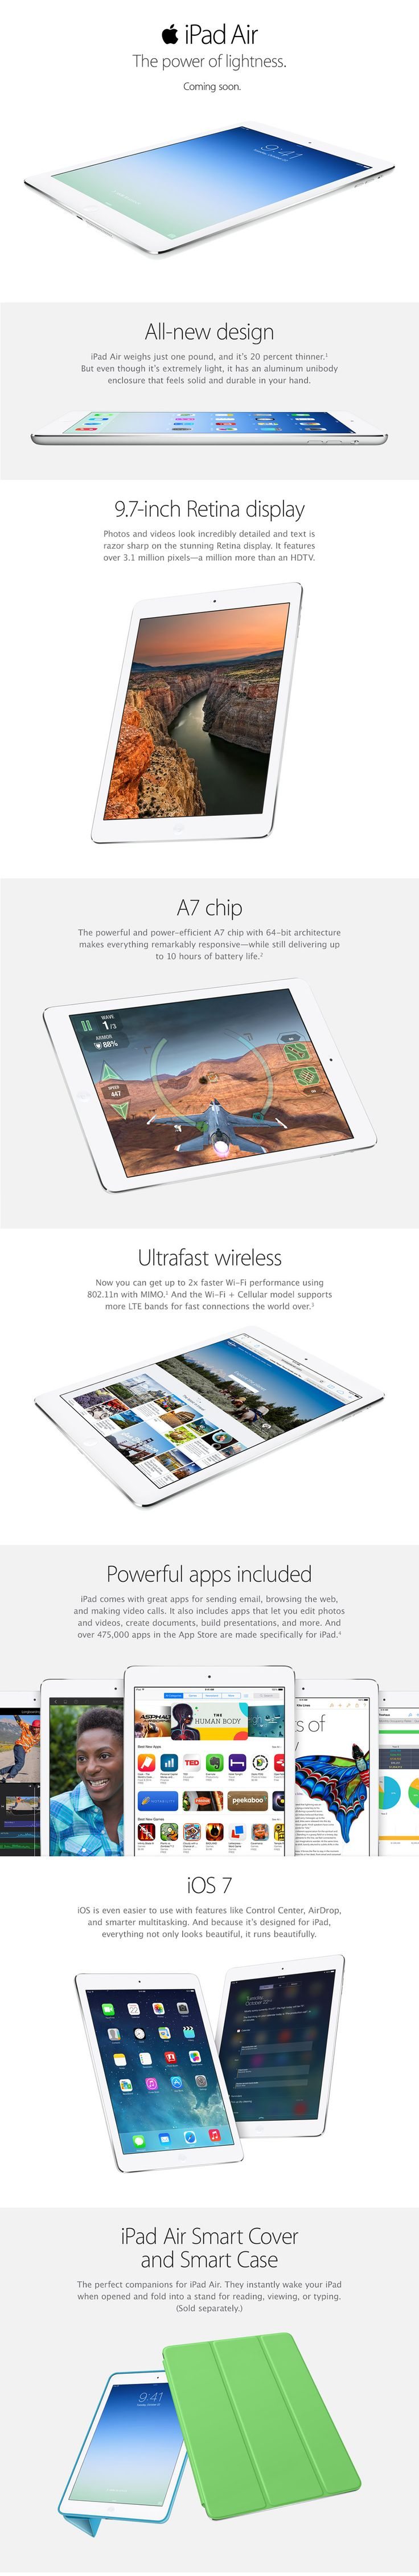 iPad Air- All I want for Christmas..... :D One can dream!